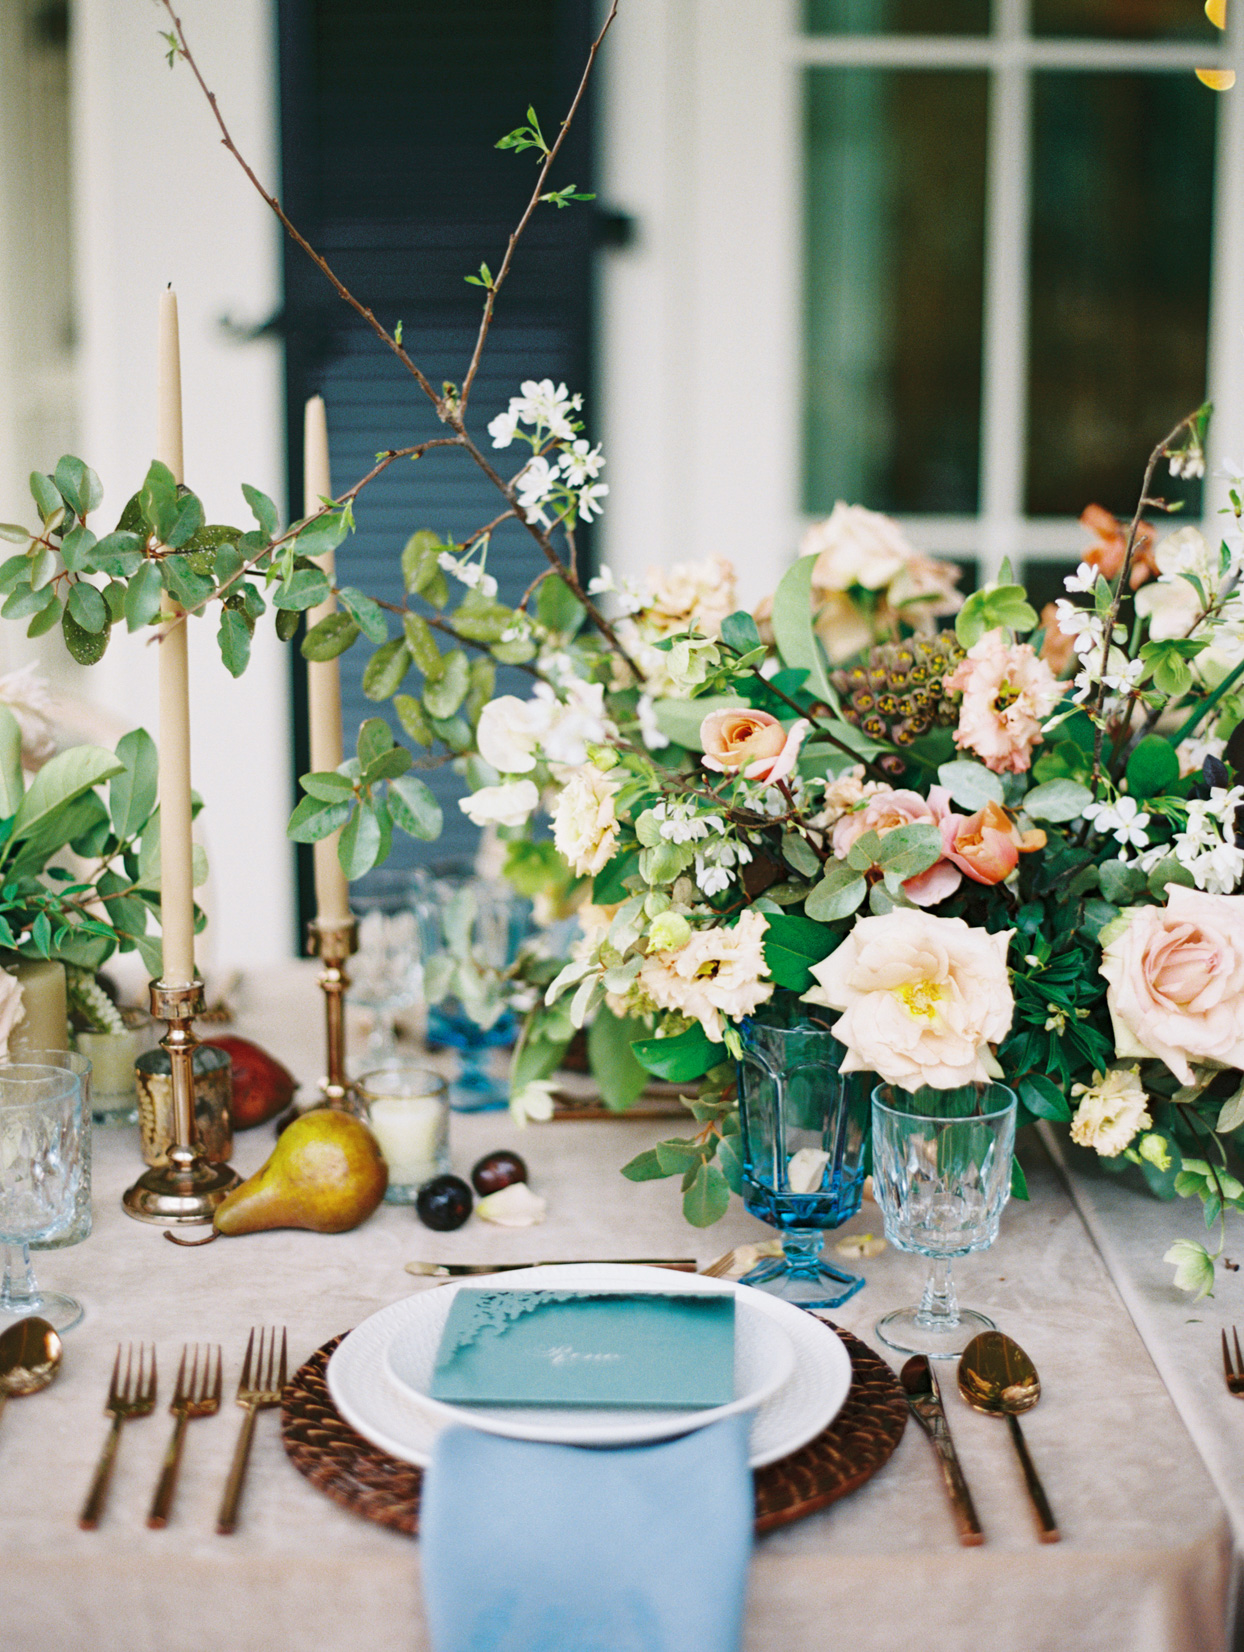 elegant rustic table setting with fruit and floral decor